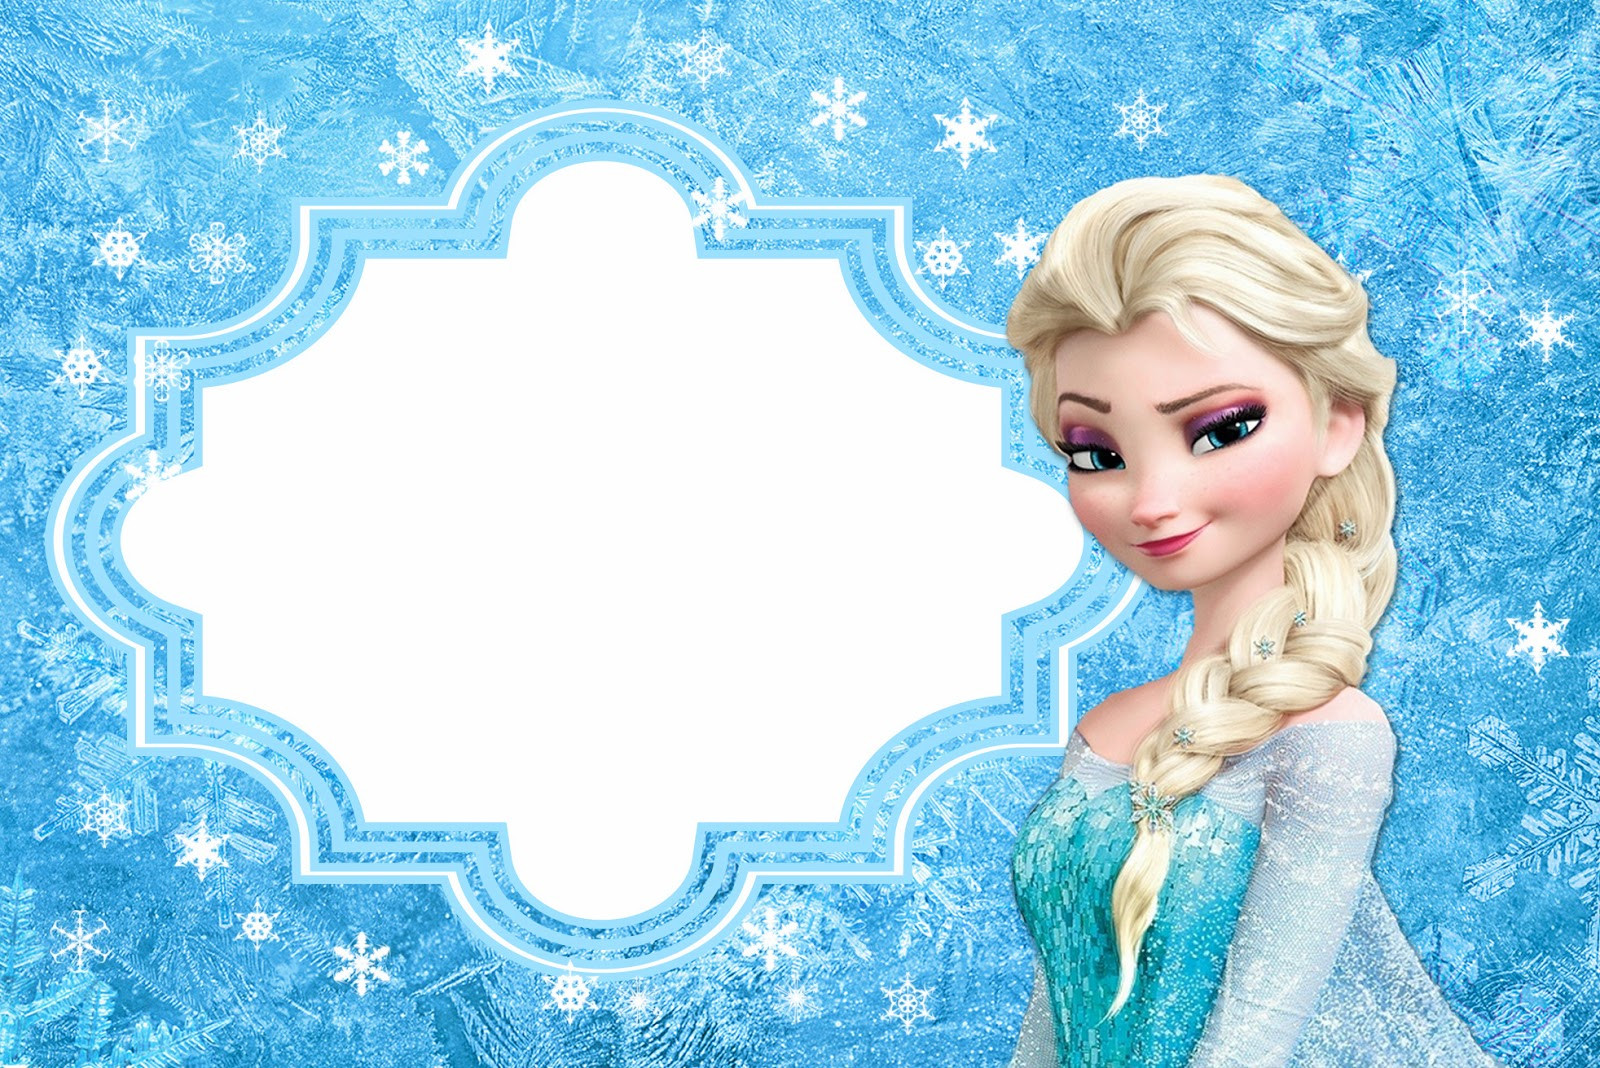 Free Frozen Invitations Printable Frozen Free Printable Cards or Party Invitations Oh My